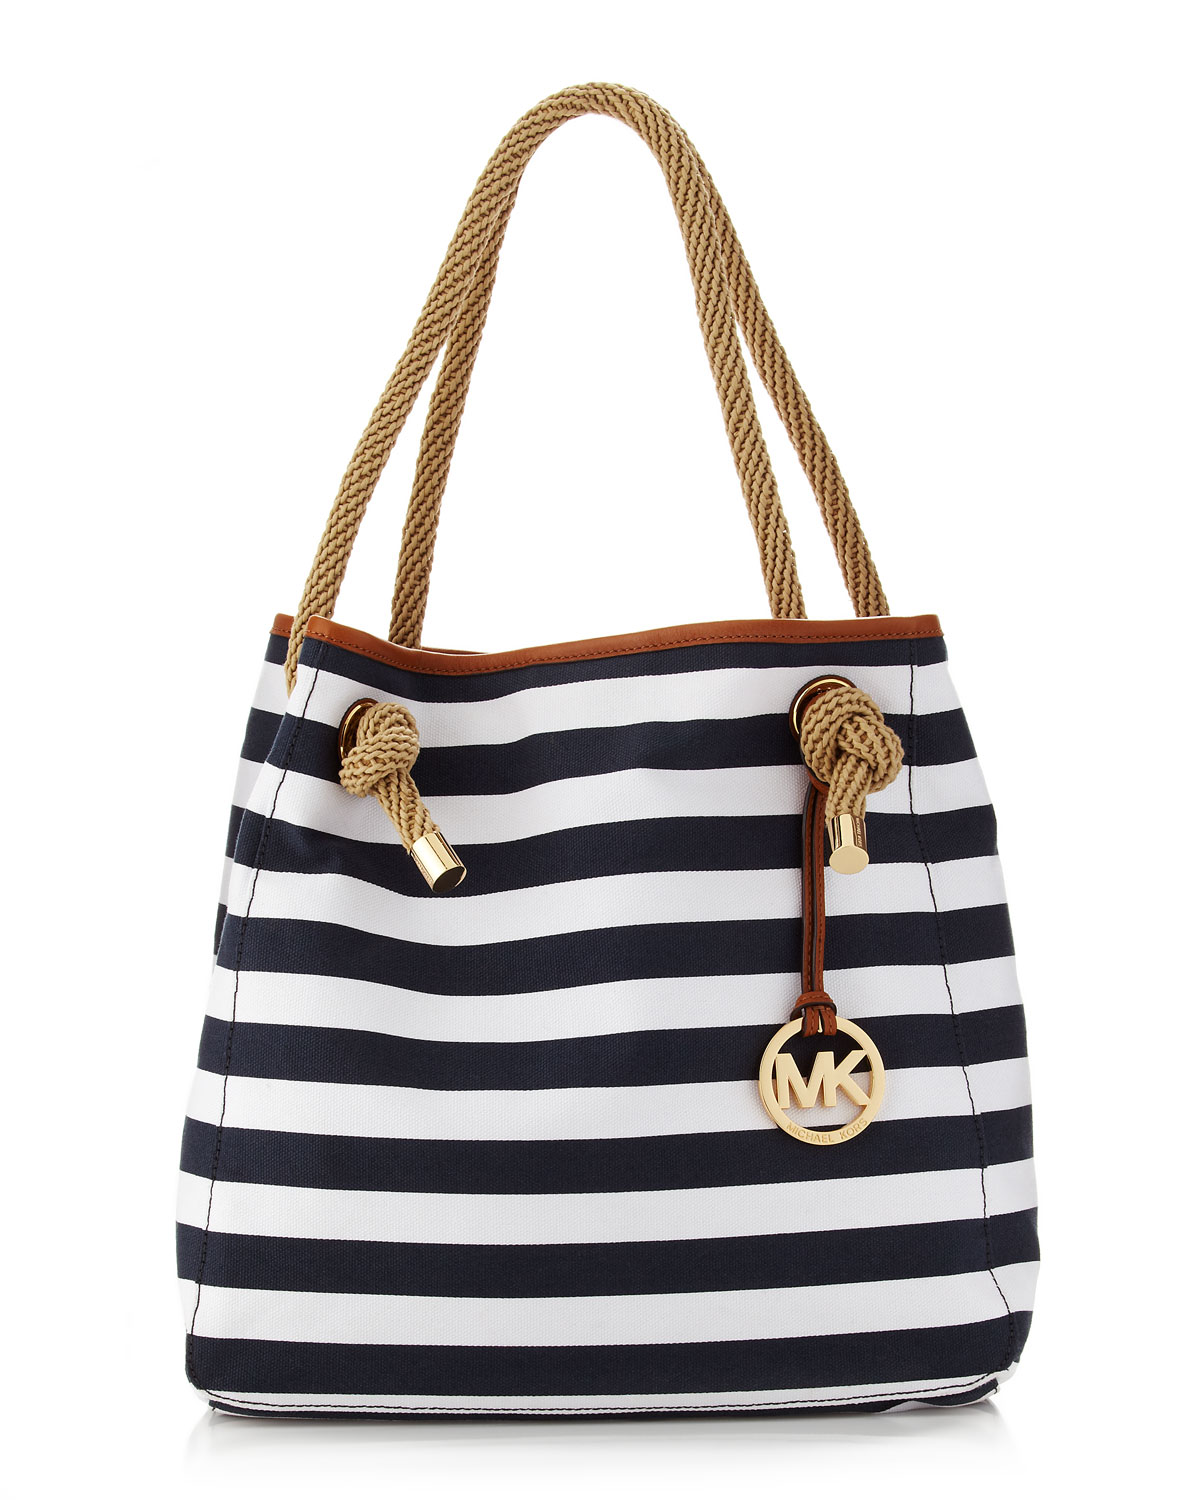 ca34689057efb9 Michael Kors Marina Large Canvas Grab Bag in White - Lyst